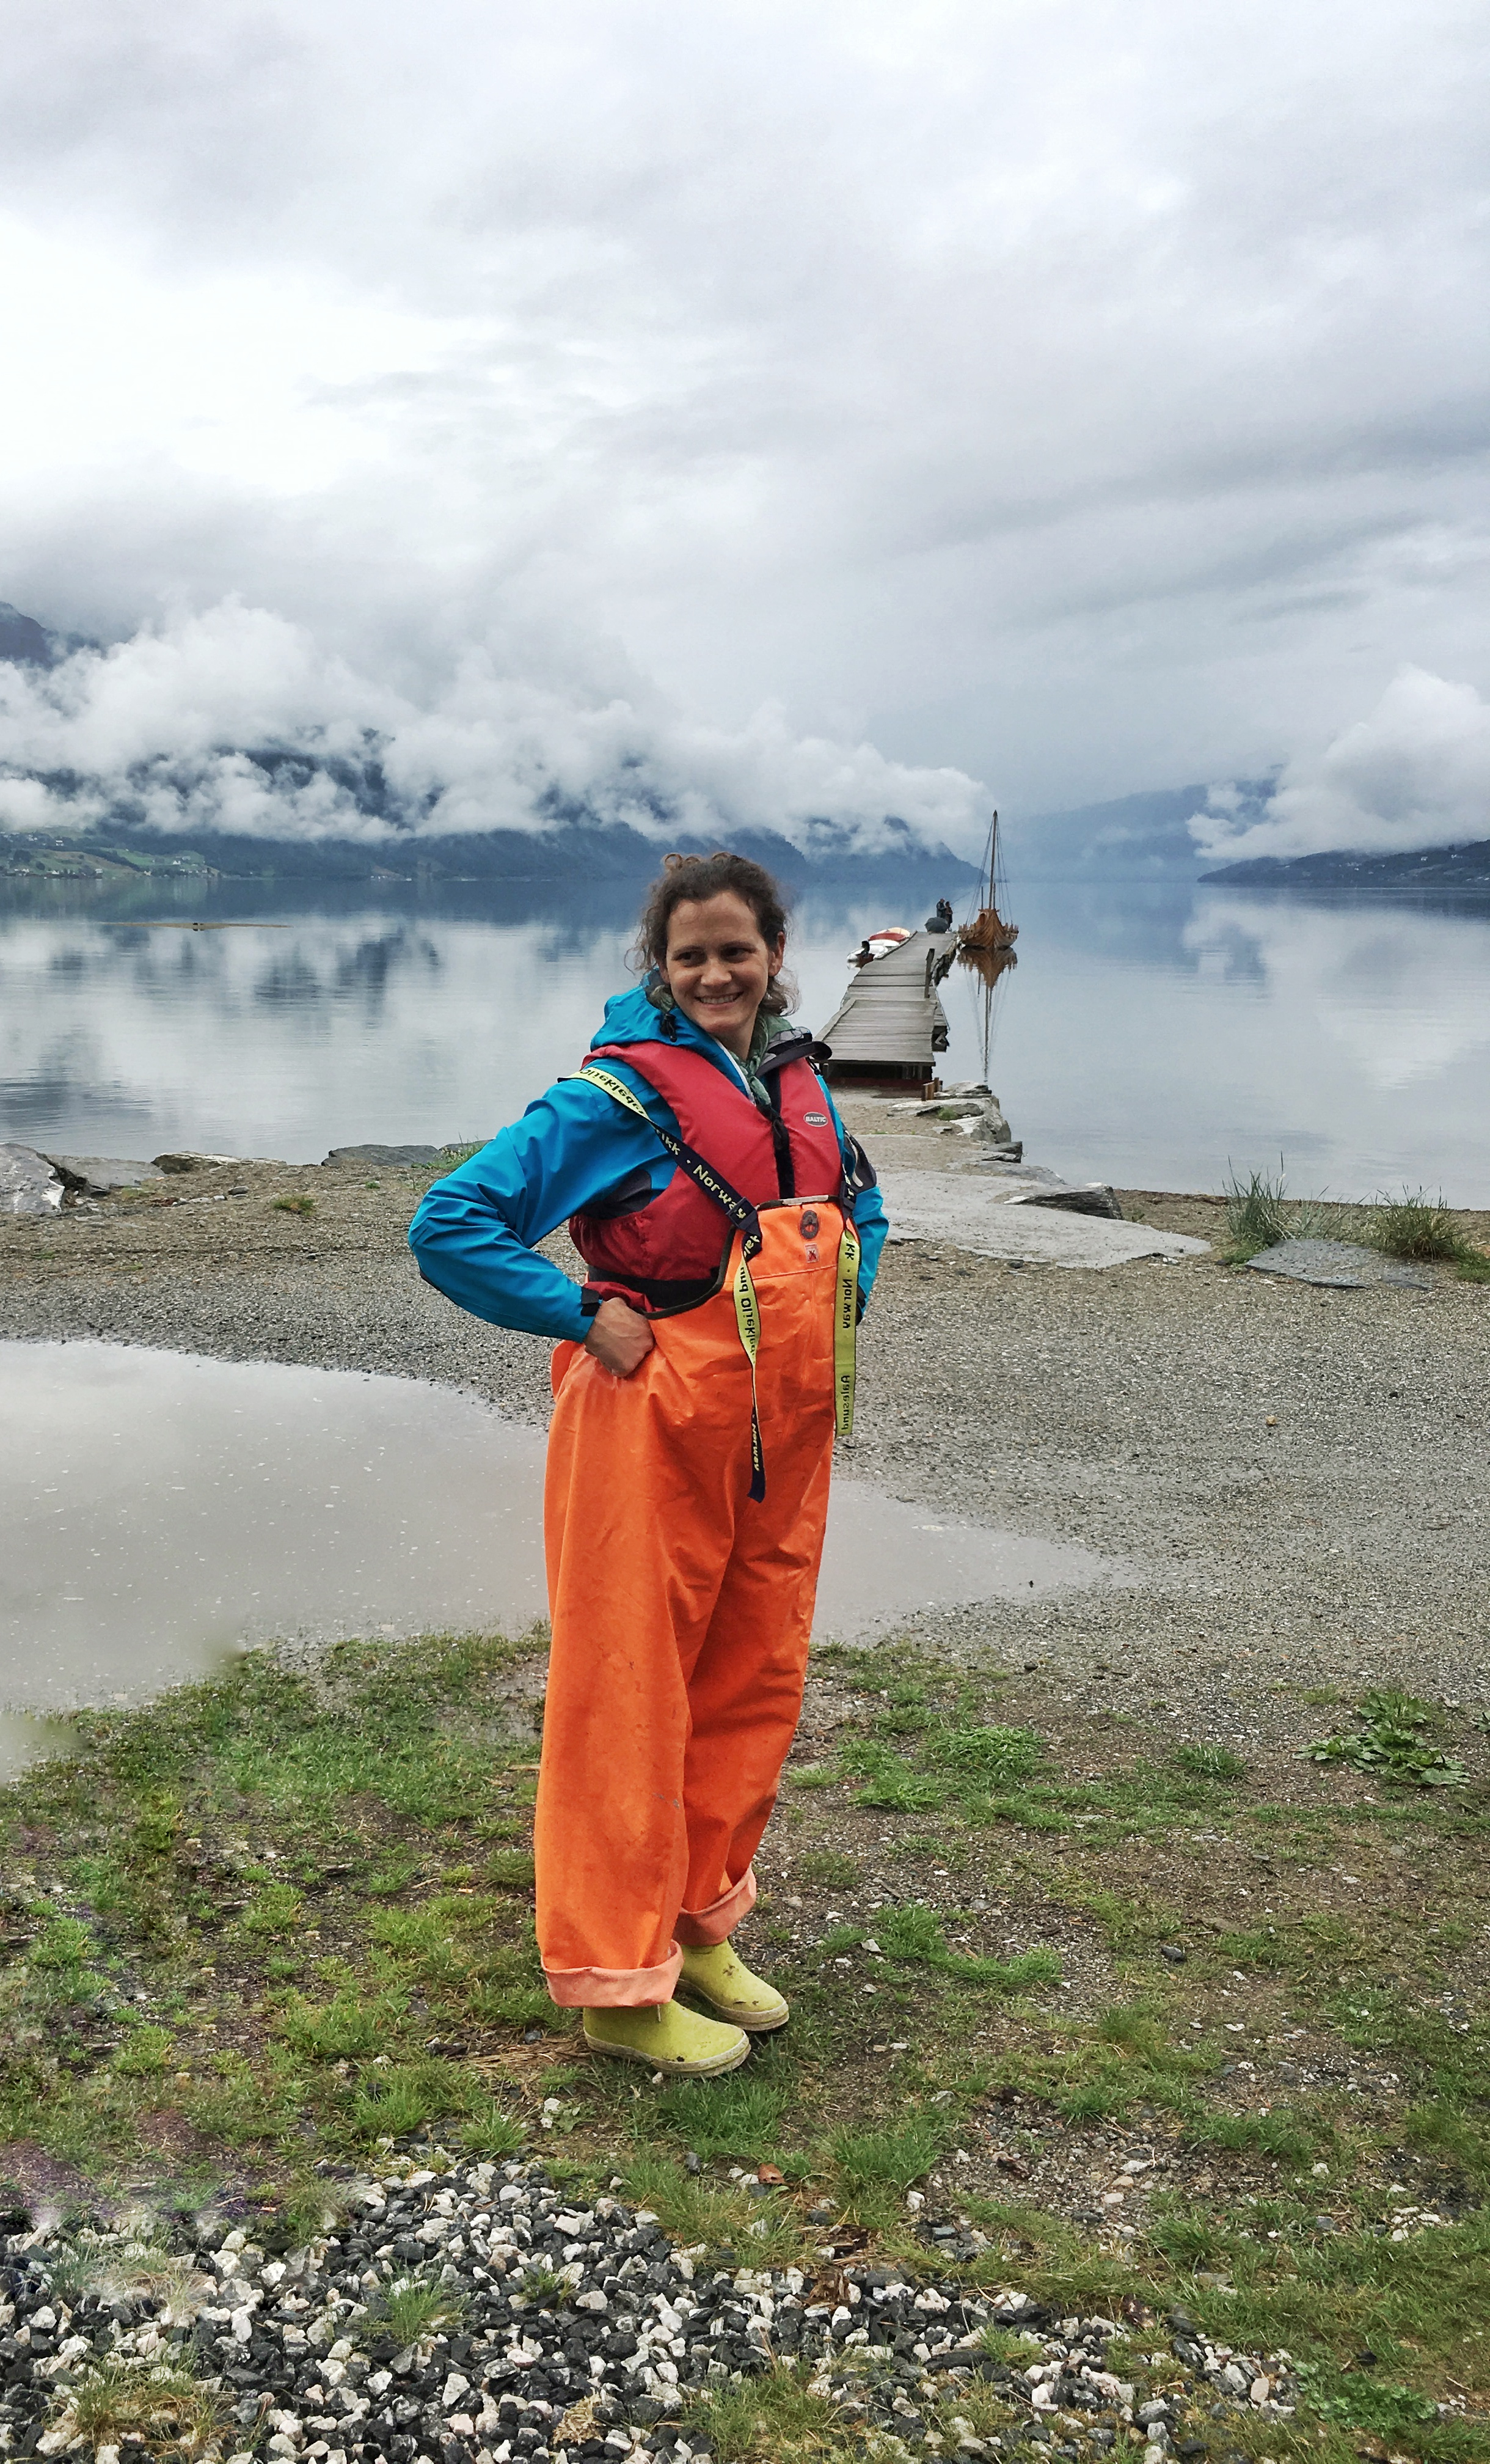 Summer of 2018 in Sandane, Norway - In lots of gear getting ready to go out on a small boat for fishing. We expected rain and dressed for it. I helped out with … taking the photos.